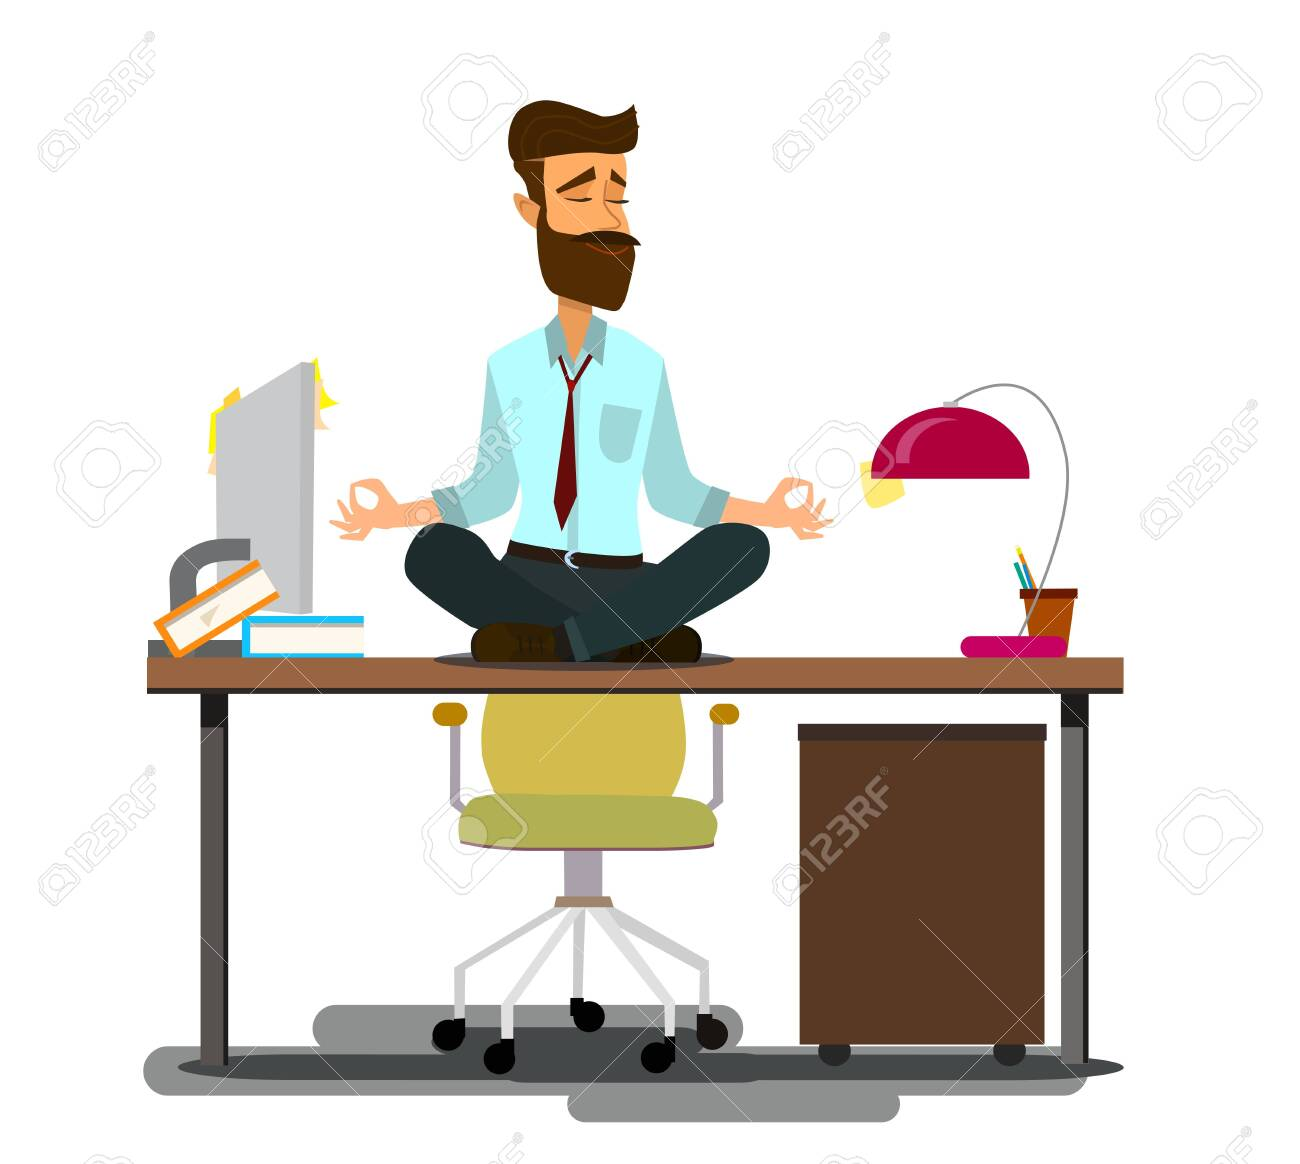 Relaxing And Stress Relief At Workplace Cartoon Vector Concept Royalty Free Cliparts Vectors And Stock Illustration Image 123394749